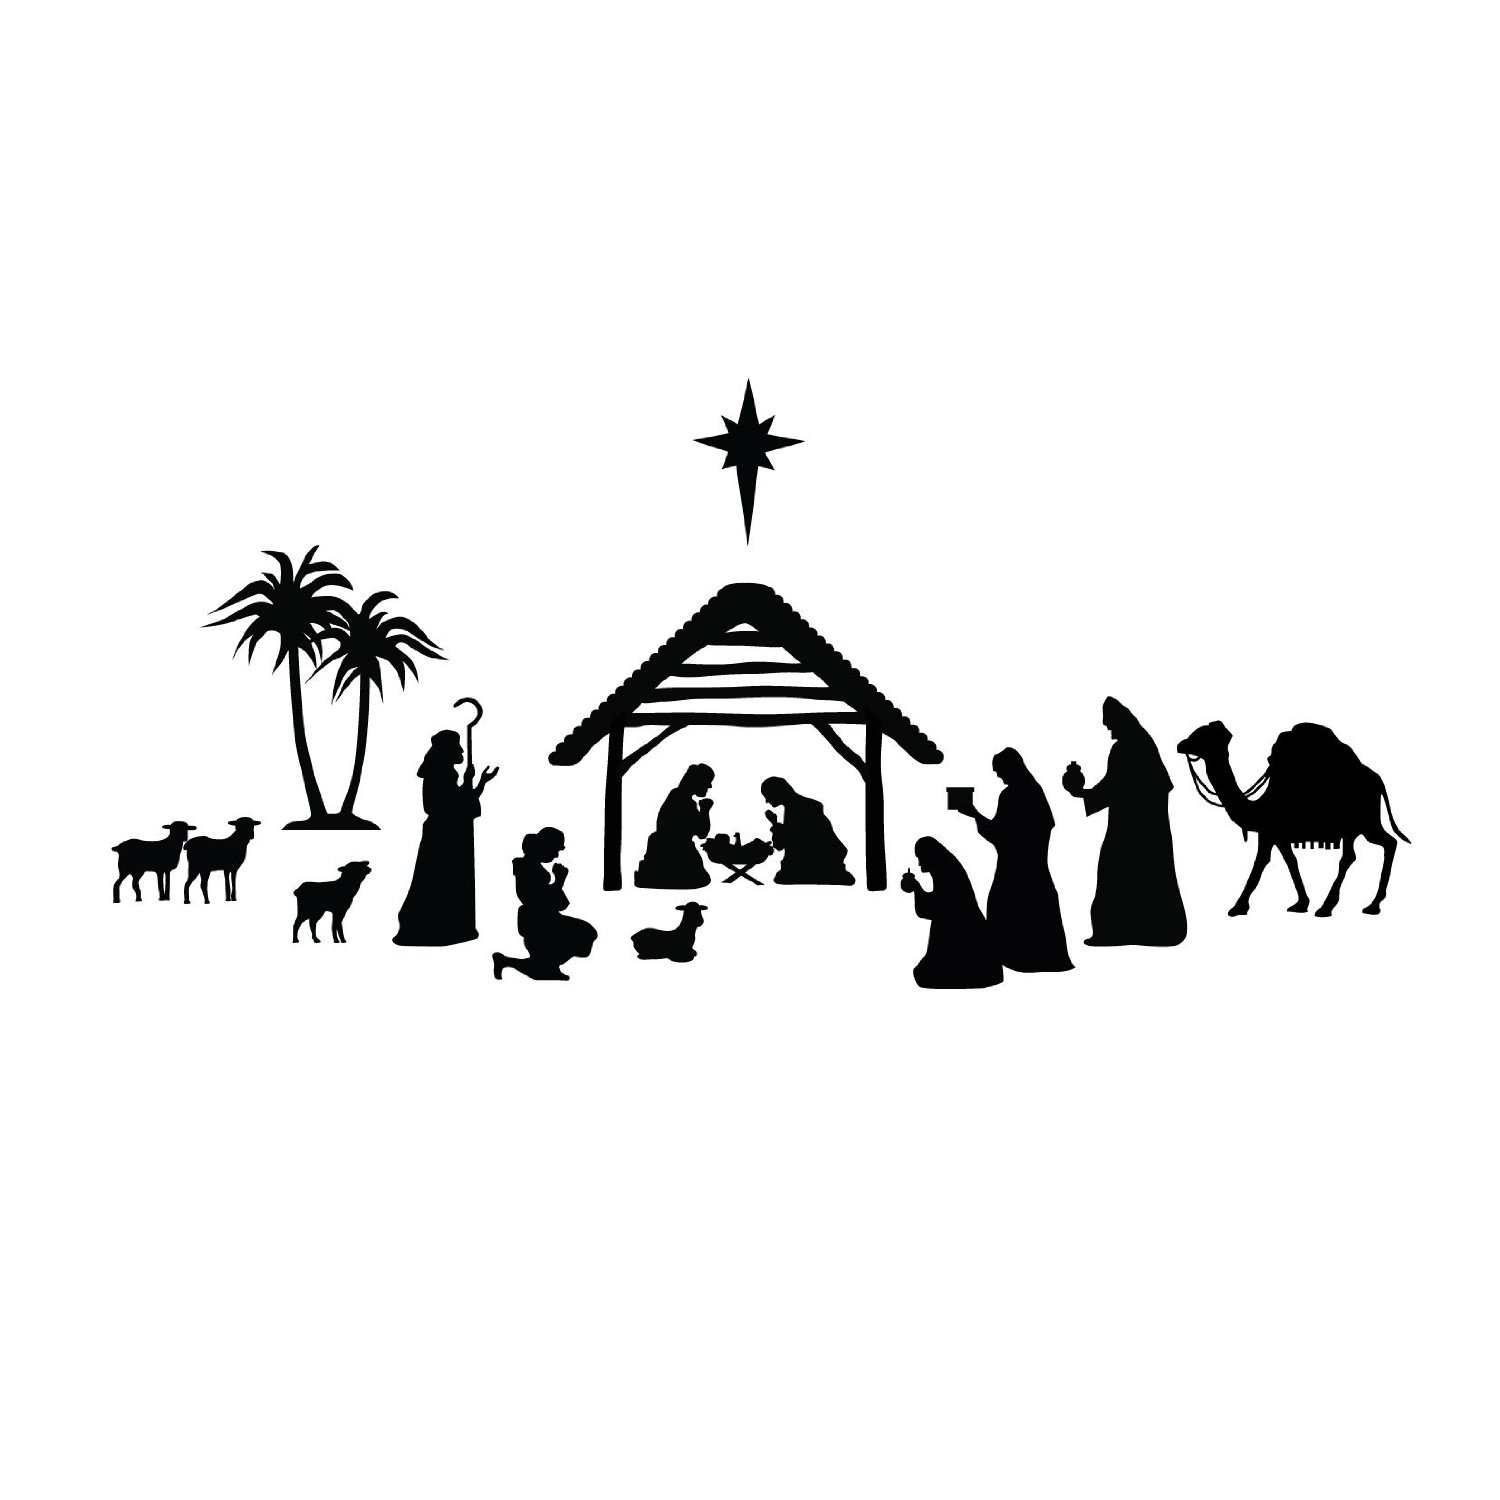 Simple Nativity Scene Silhouette December 2014 fellowship church